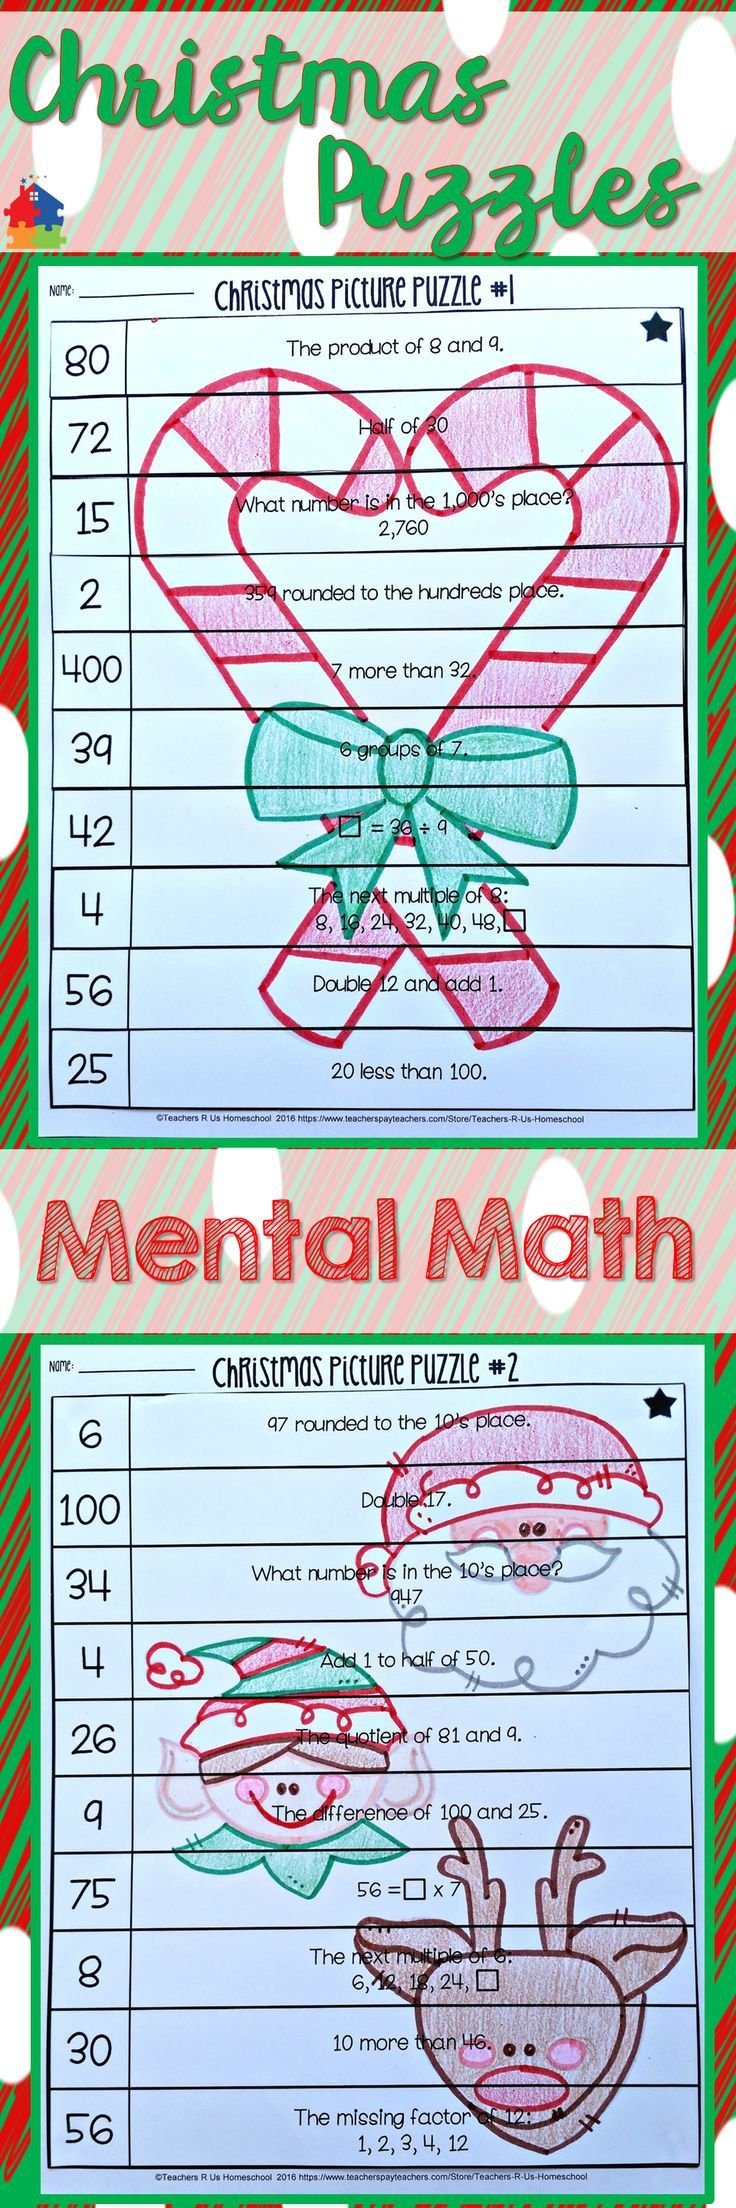 92 best Educational Puzzles images on Pinterest | Math activities ...